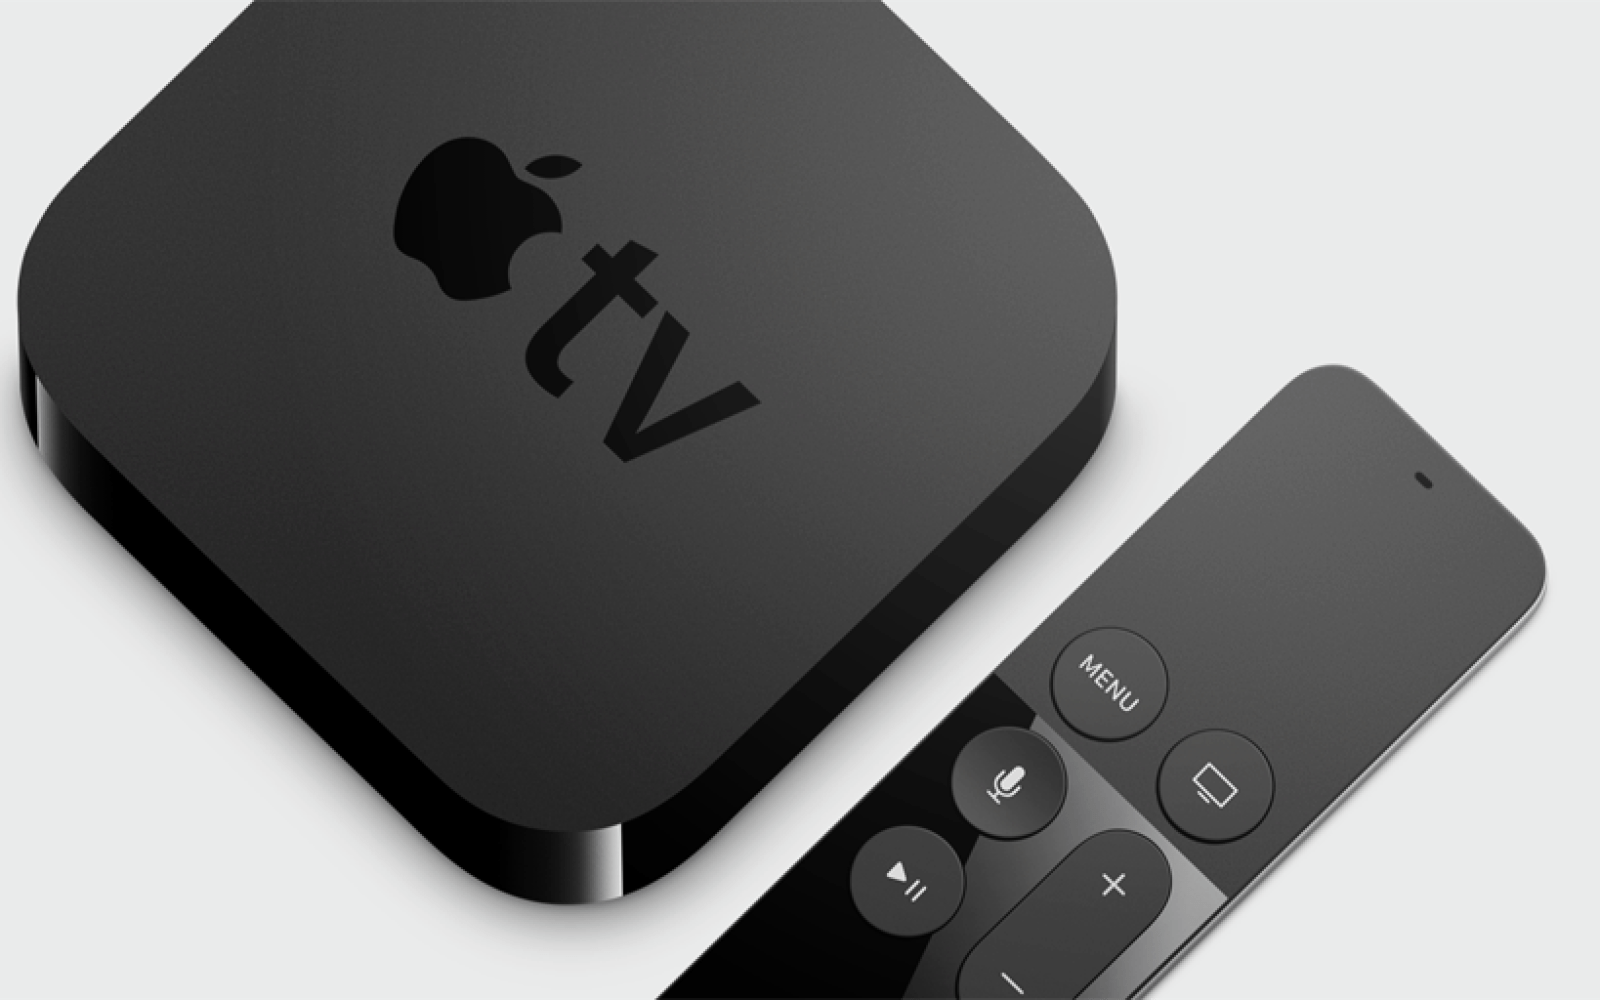 Apple releases tvOS 9.1.1 software update with Podcasts app for the new Apple TV